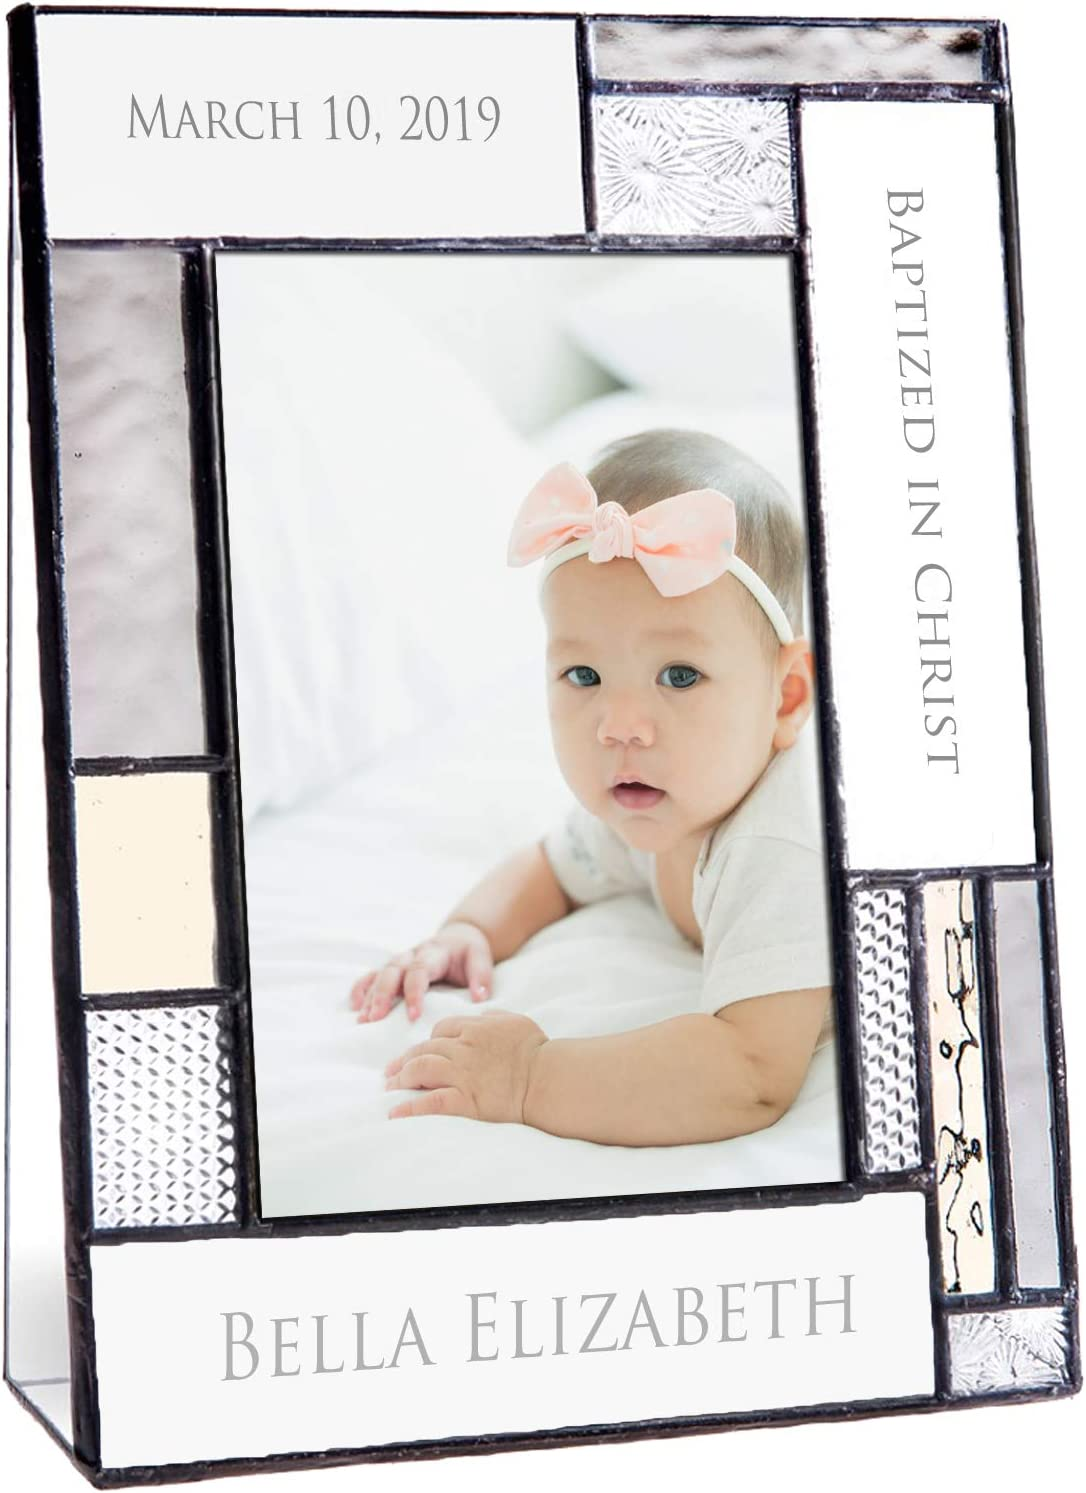 Safety and trust Baptism Gifts For Girls Or Boys Frame Gorgeous Personalized Picture Custo